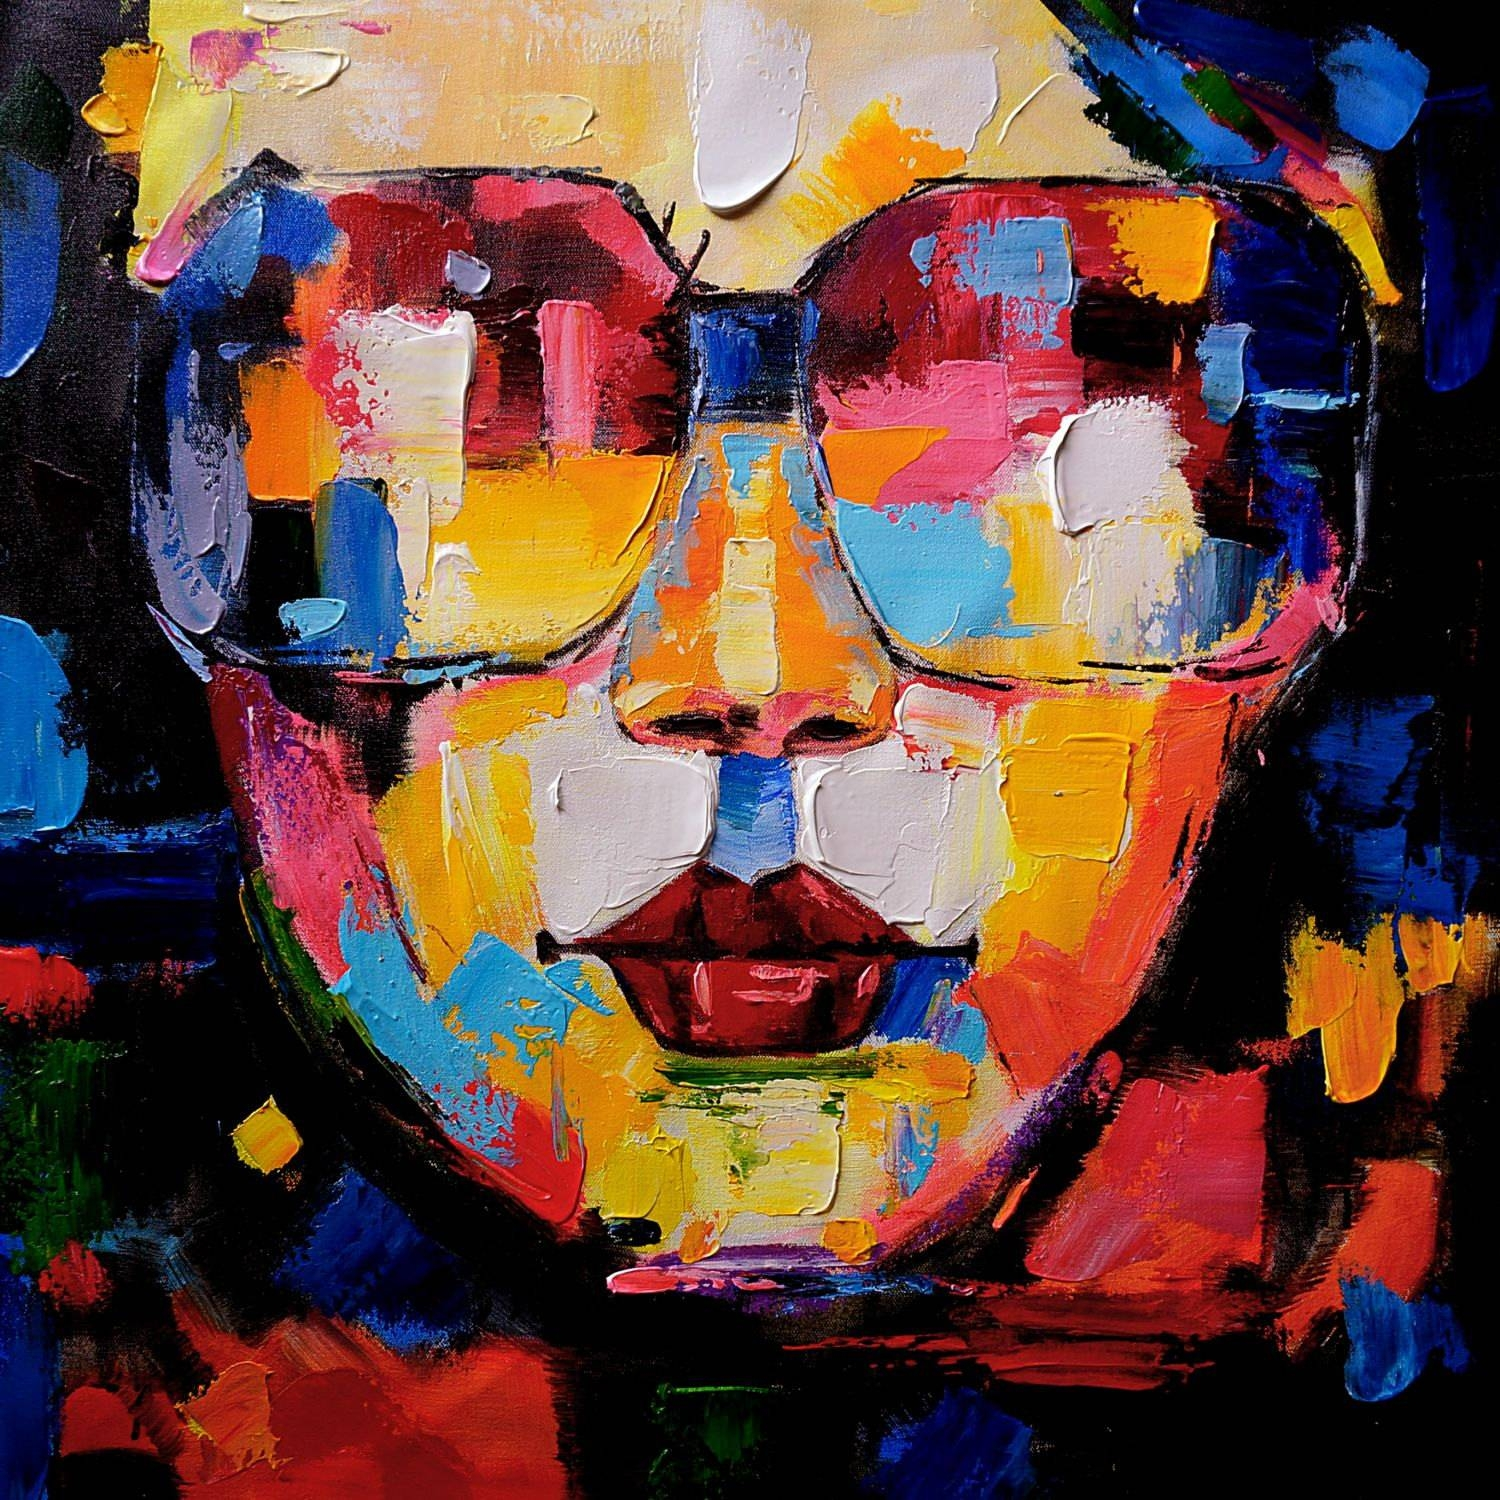 Home Decor: Cozy Art On Canvas To Complete Wall Women Face Pertaining To Most Up To Date Oil Painting Wall Art On Canvas (View 14 of 20)